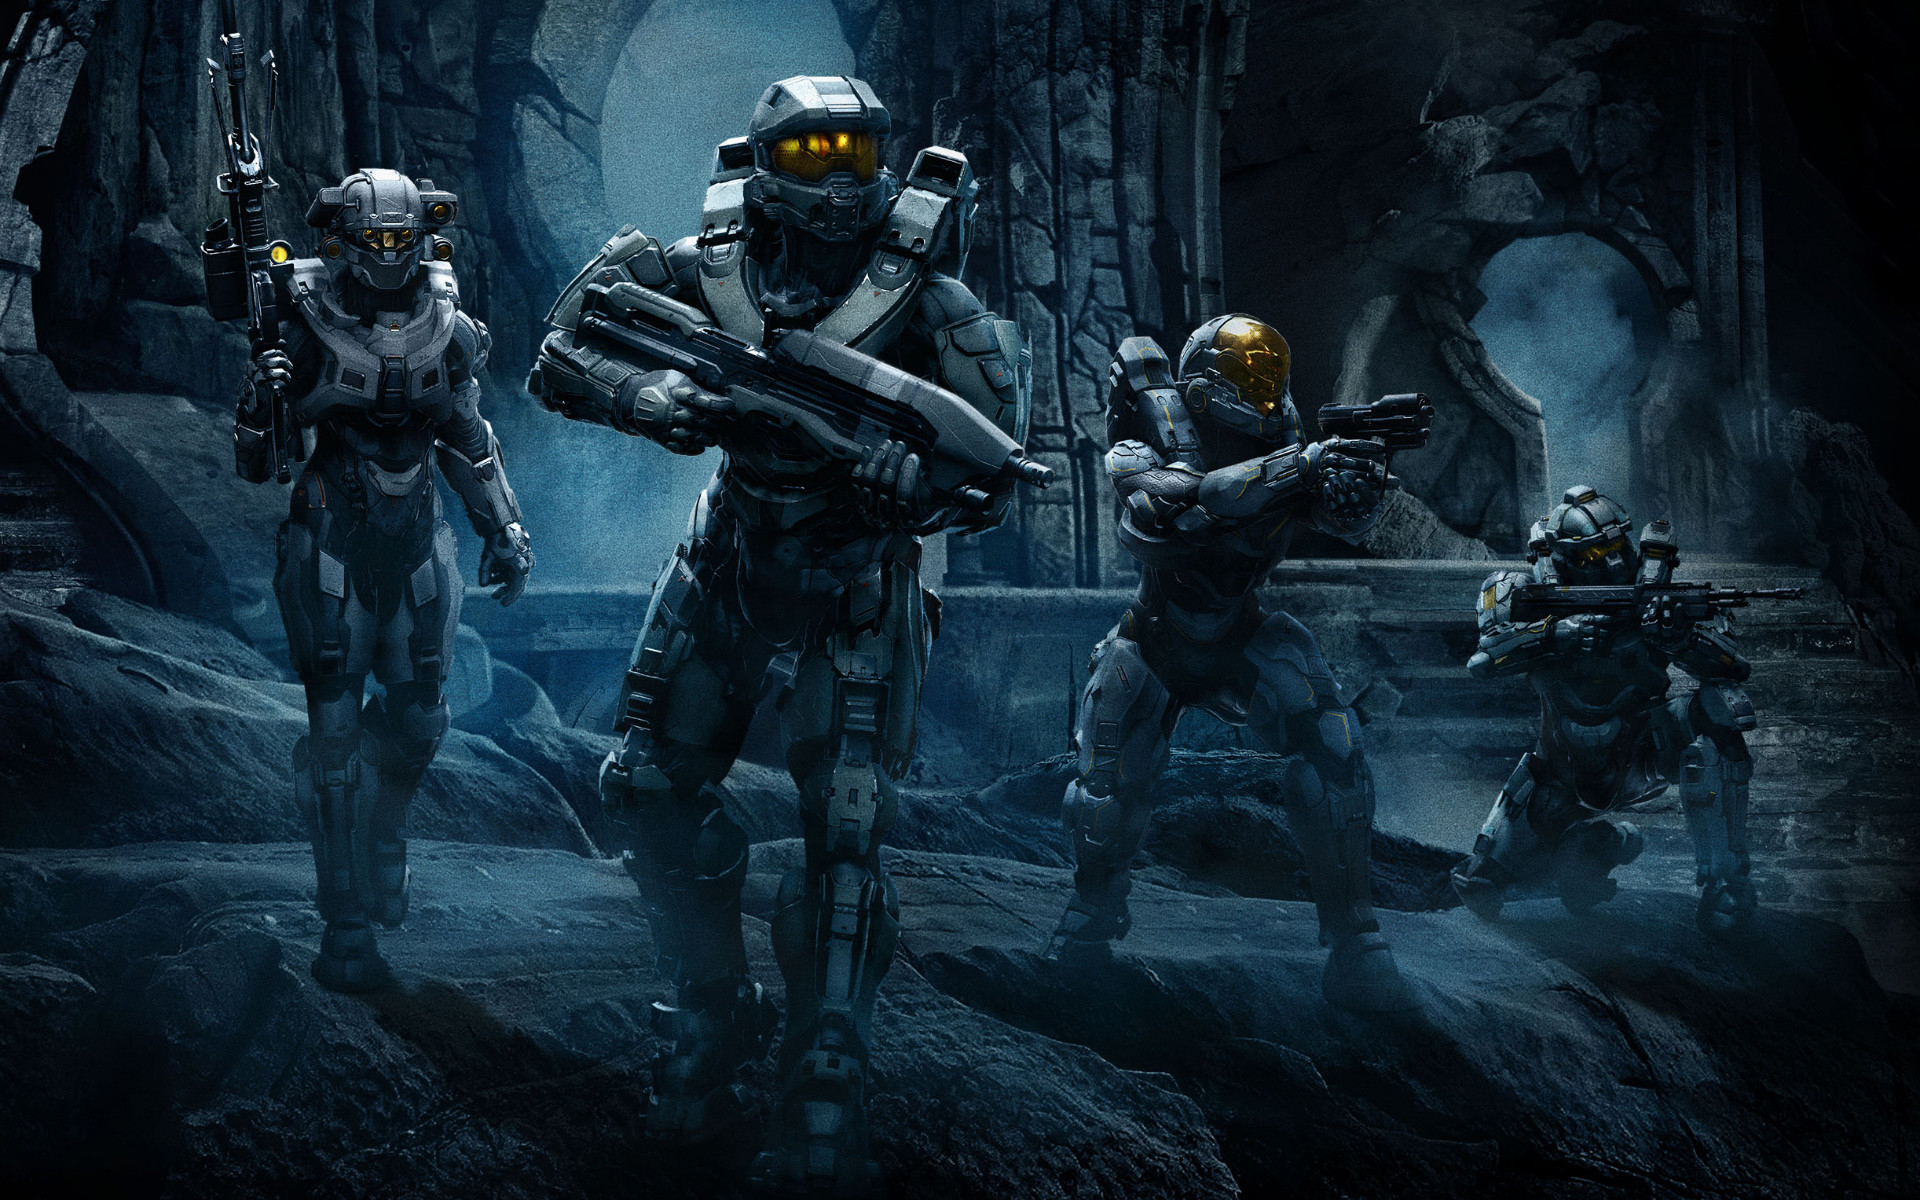 Good News Gaming: Halo Guardians Campaign Cinematic Introduces Blue Team